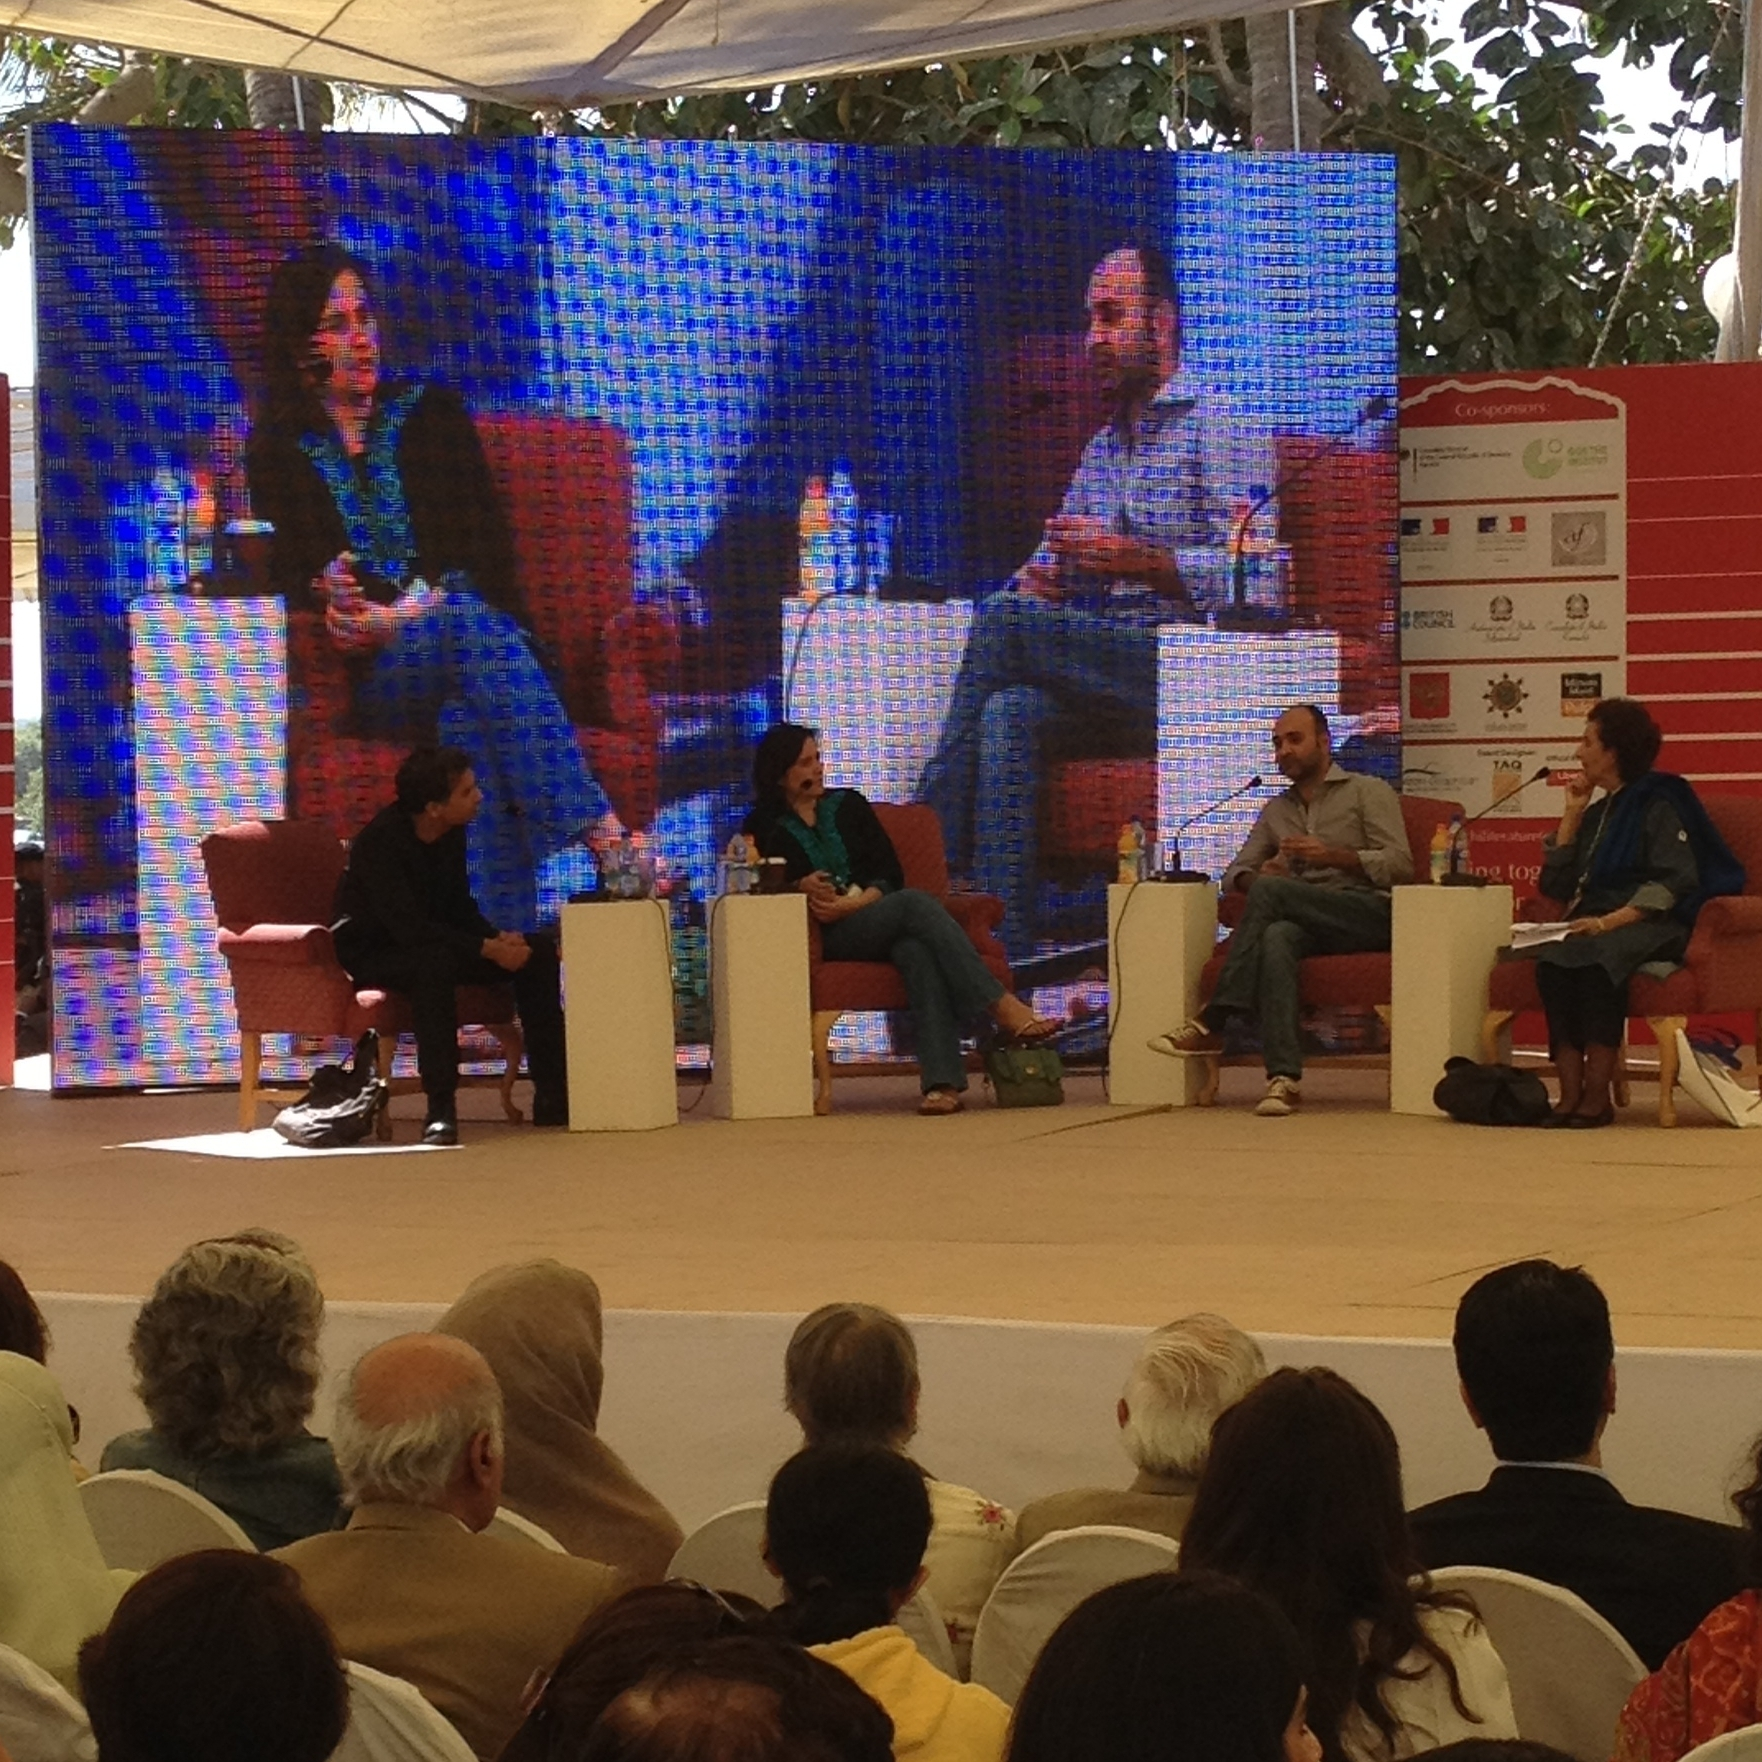 Novelists Nadeem Aslam, Kamila Shamsie, Mohsin Hamid on stage at the Karachi Literature Festival. On the far right is the moderator, writer Muneeza Shamsie -- Kamila Shamsie's mother.